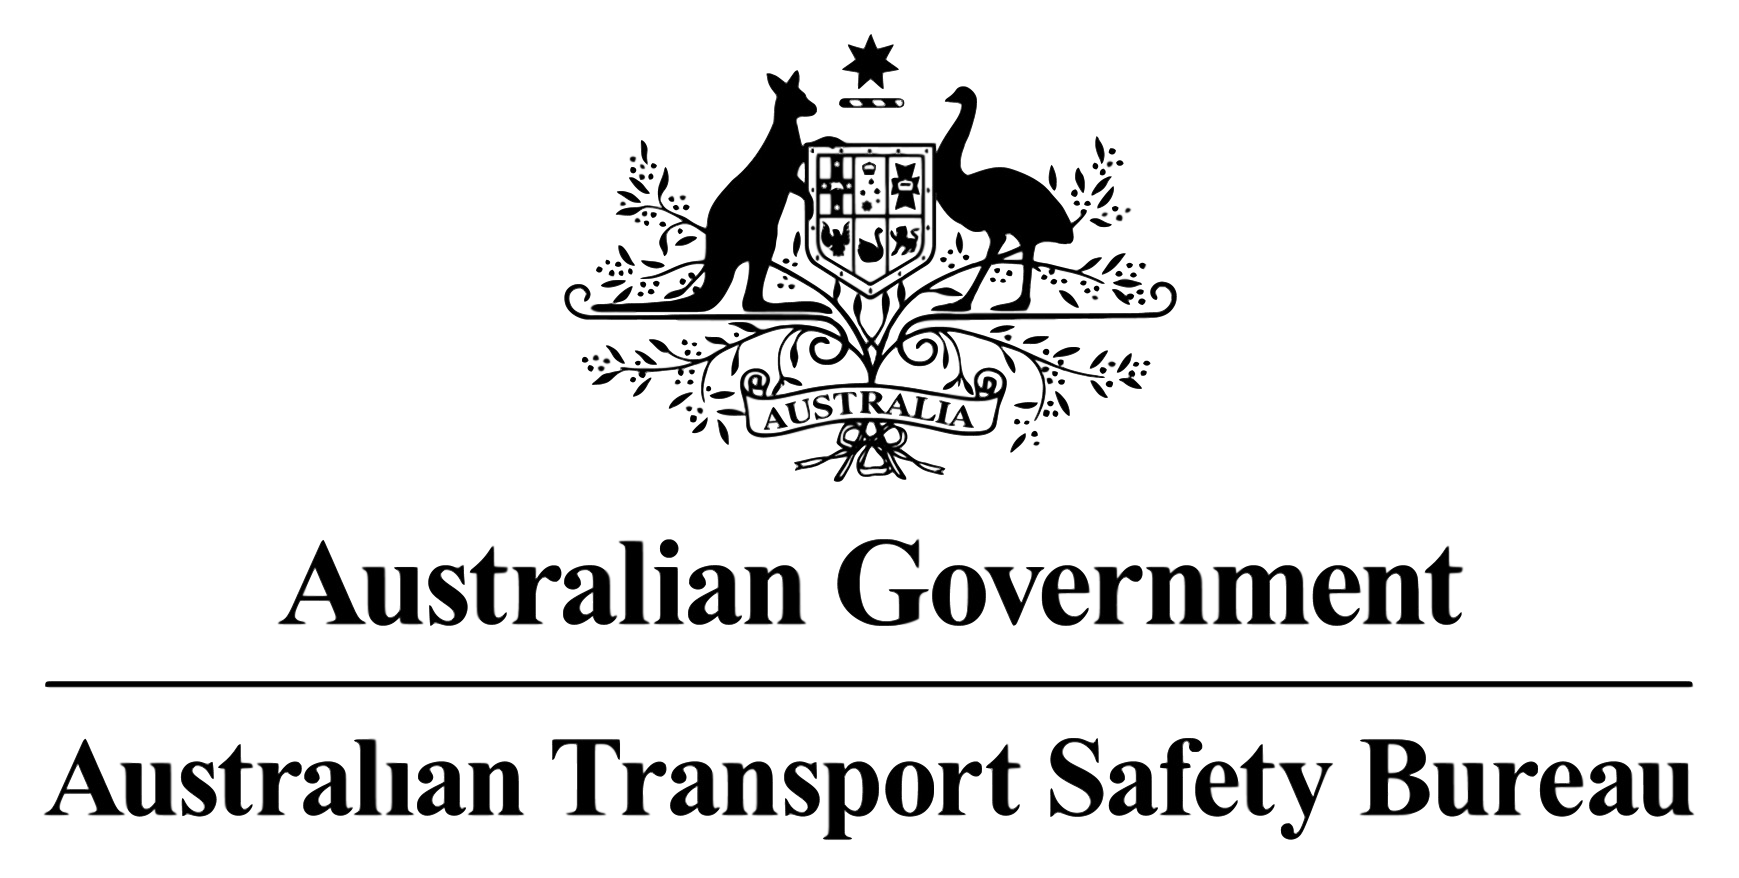 Australian Government Australian Transport Safety Bureau Logo